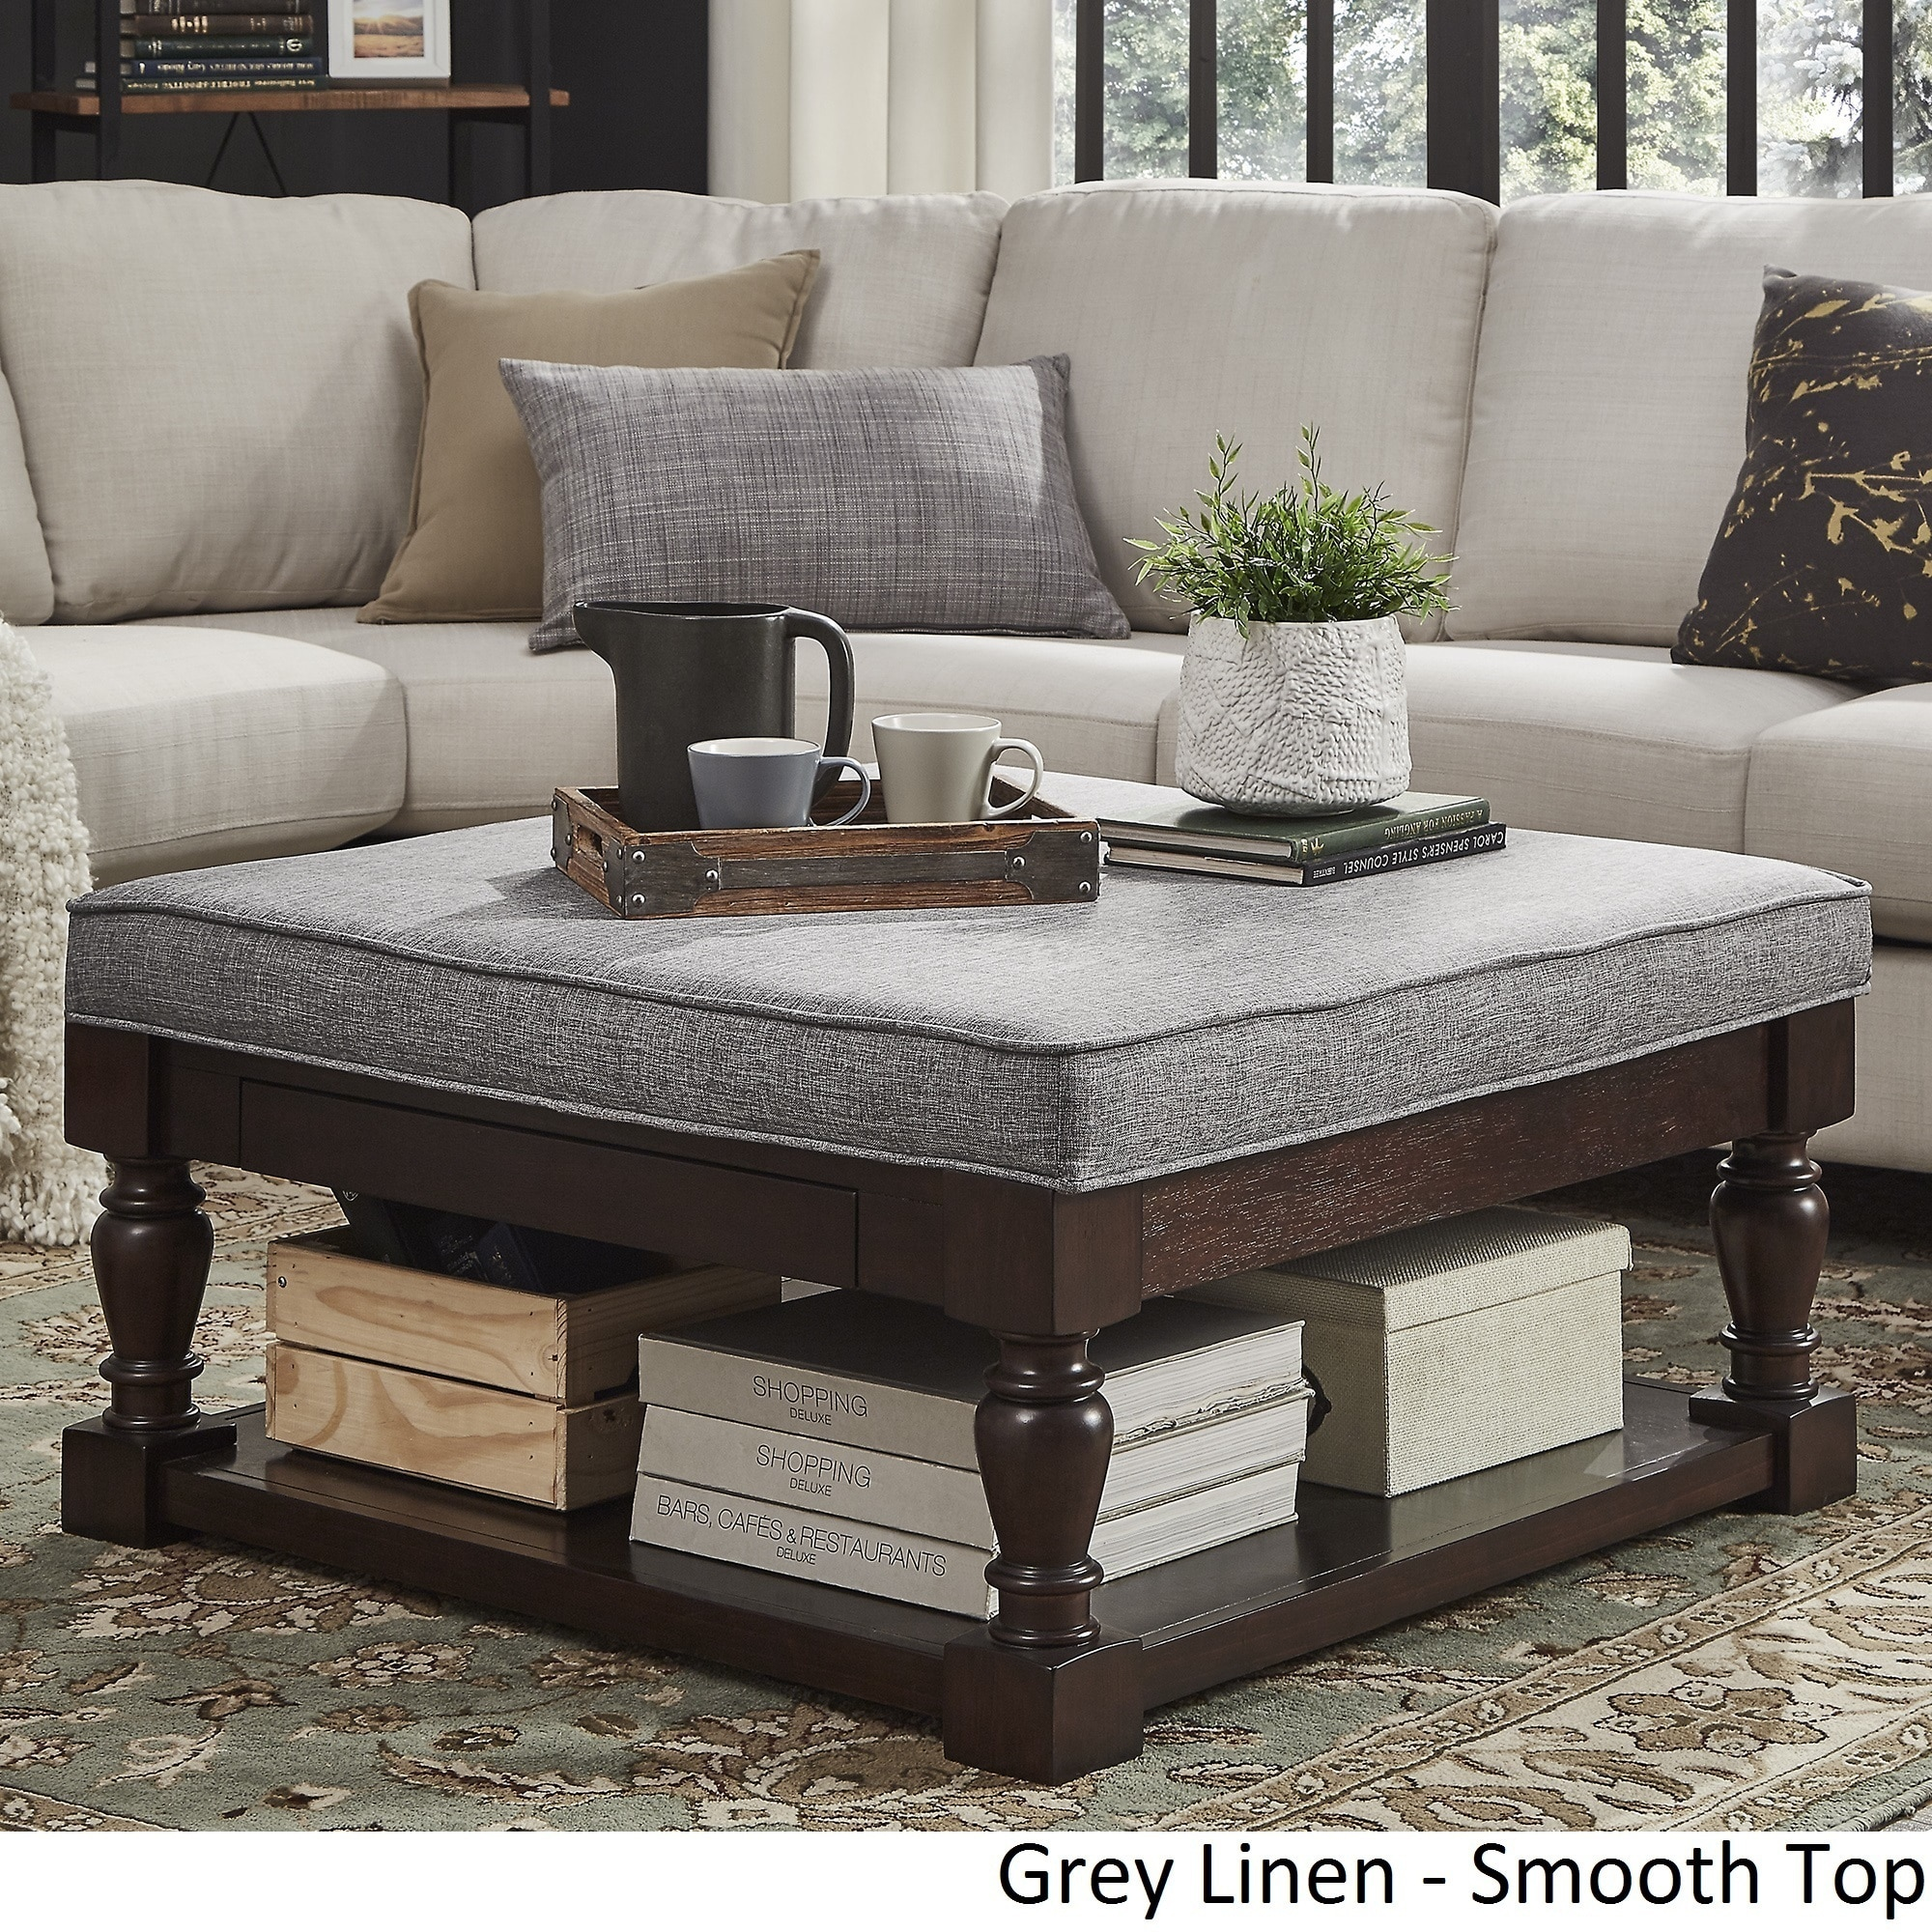 Lennon Baluster Espresso Storage Ottoman Coffee Table by iNSPIRE Q